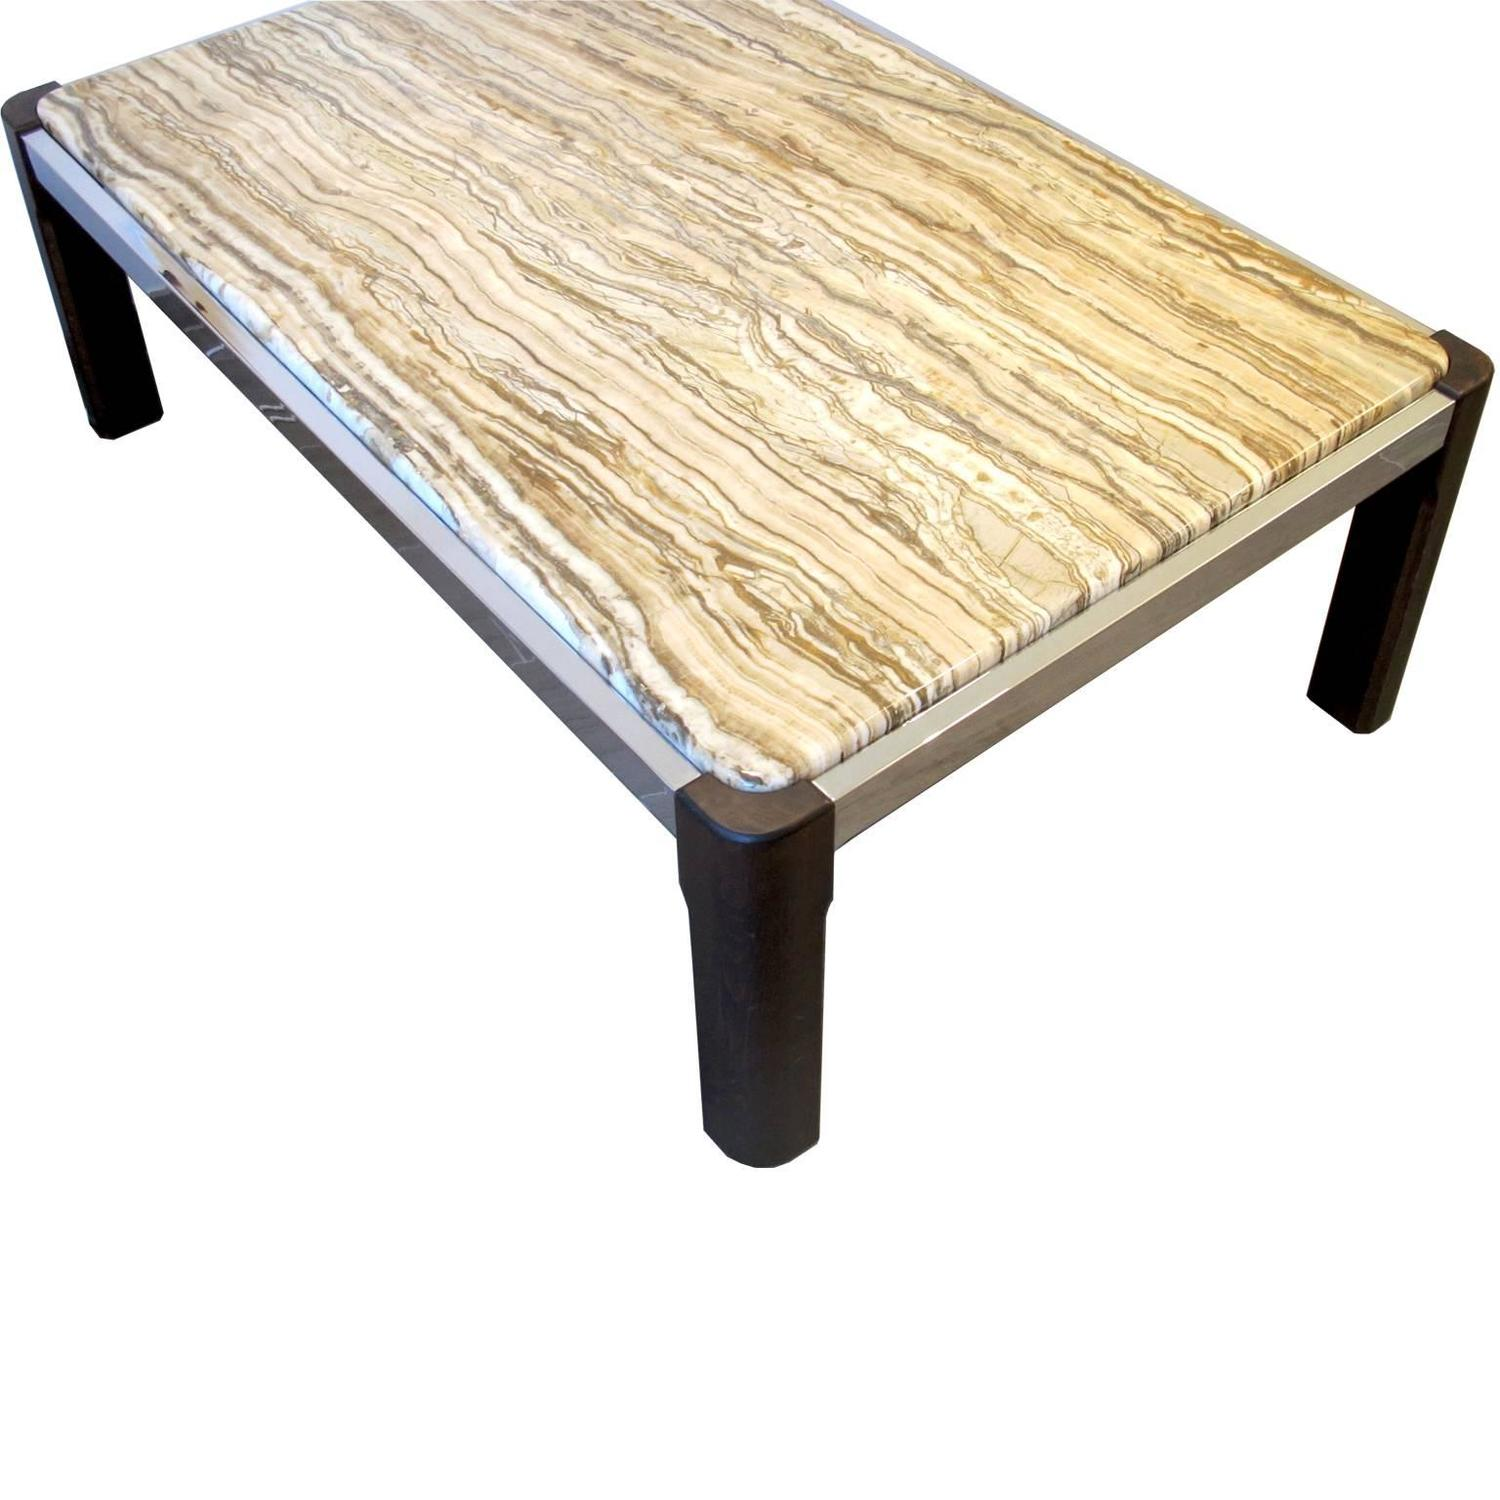 Antique Single Teak Slab Top Coffee Table At 1stdibs: Marble-Top Scandinavian Coffee Table With Teak And Chrome